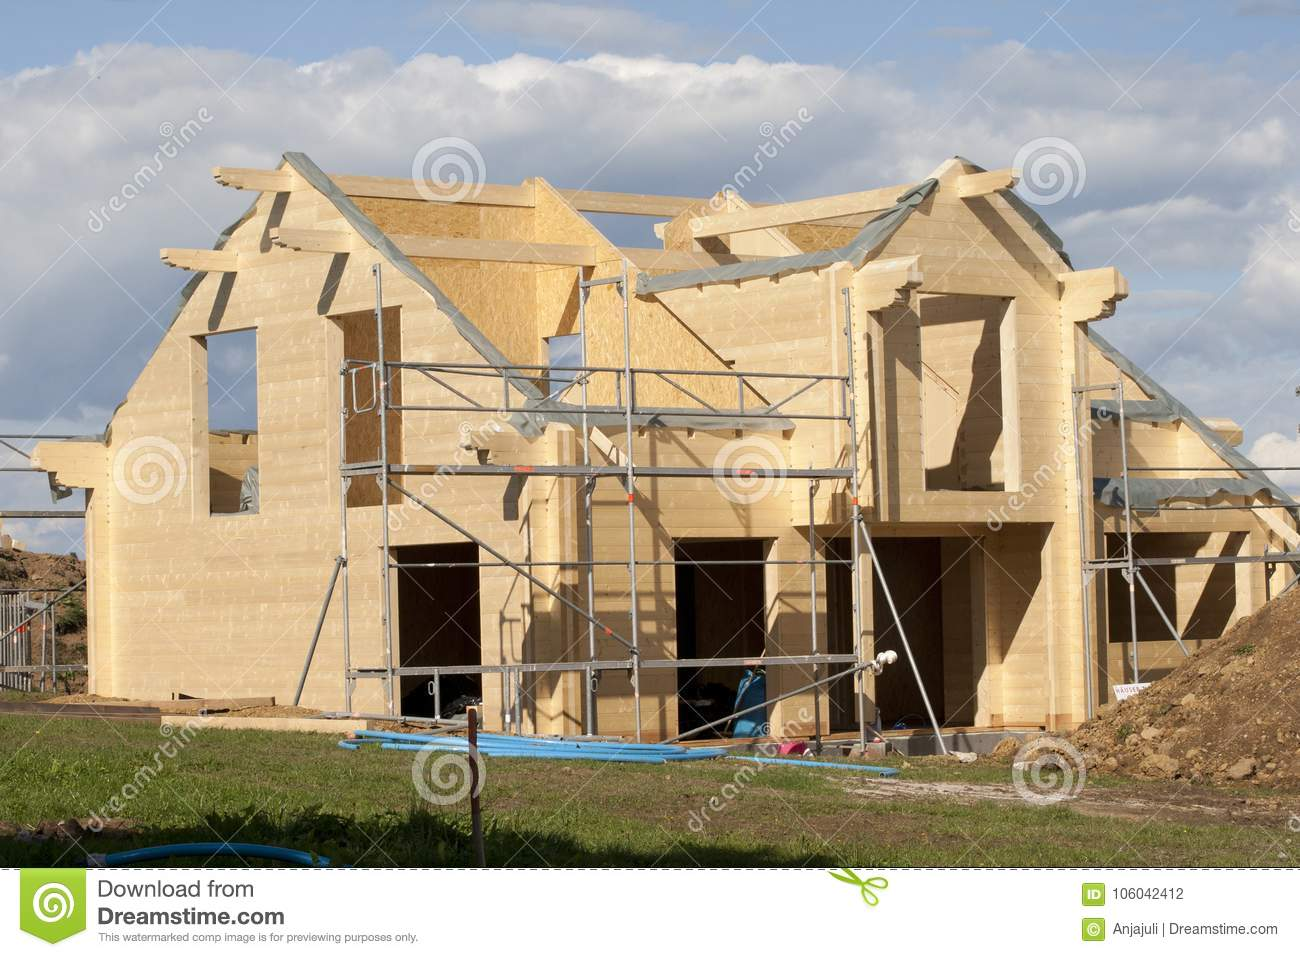 Construction of wooden houses, building materials 11